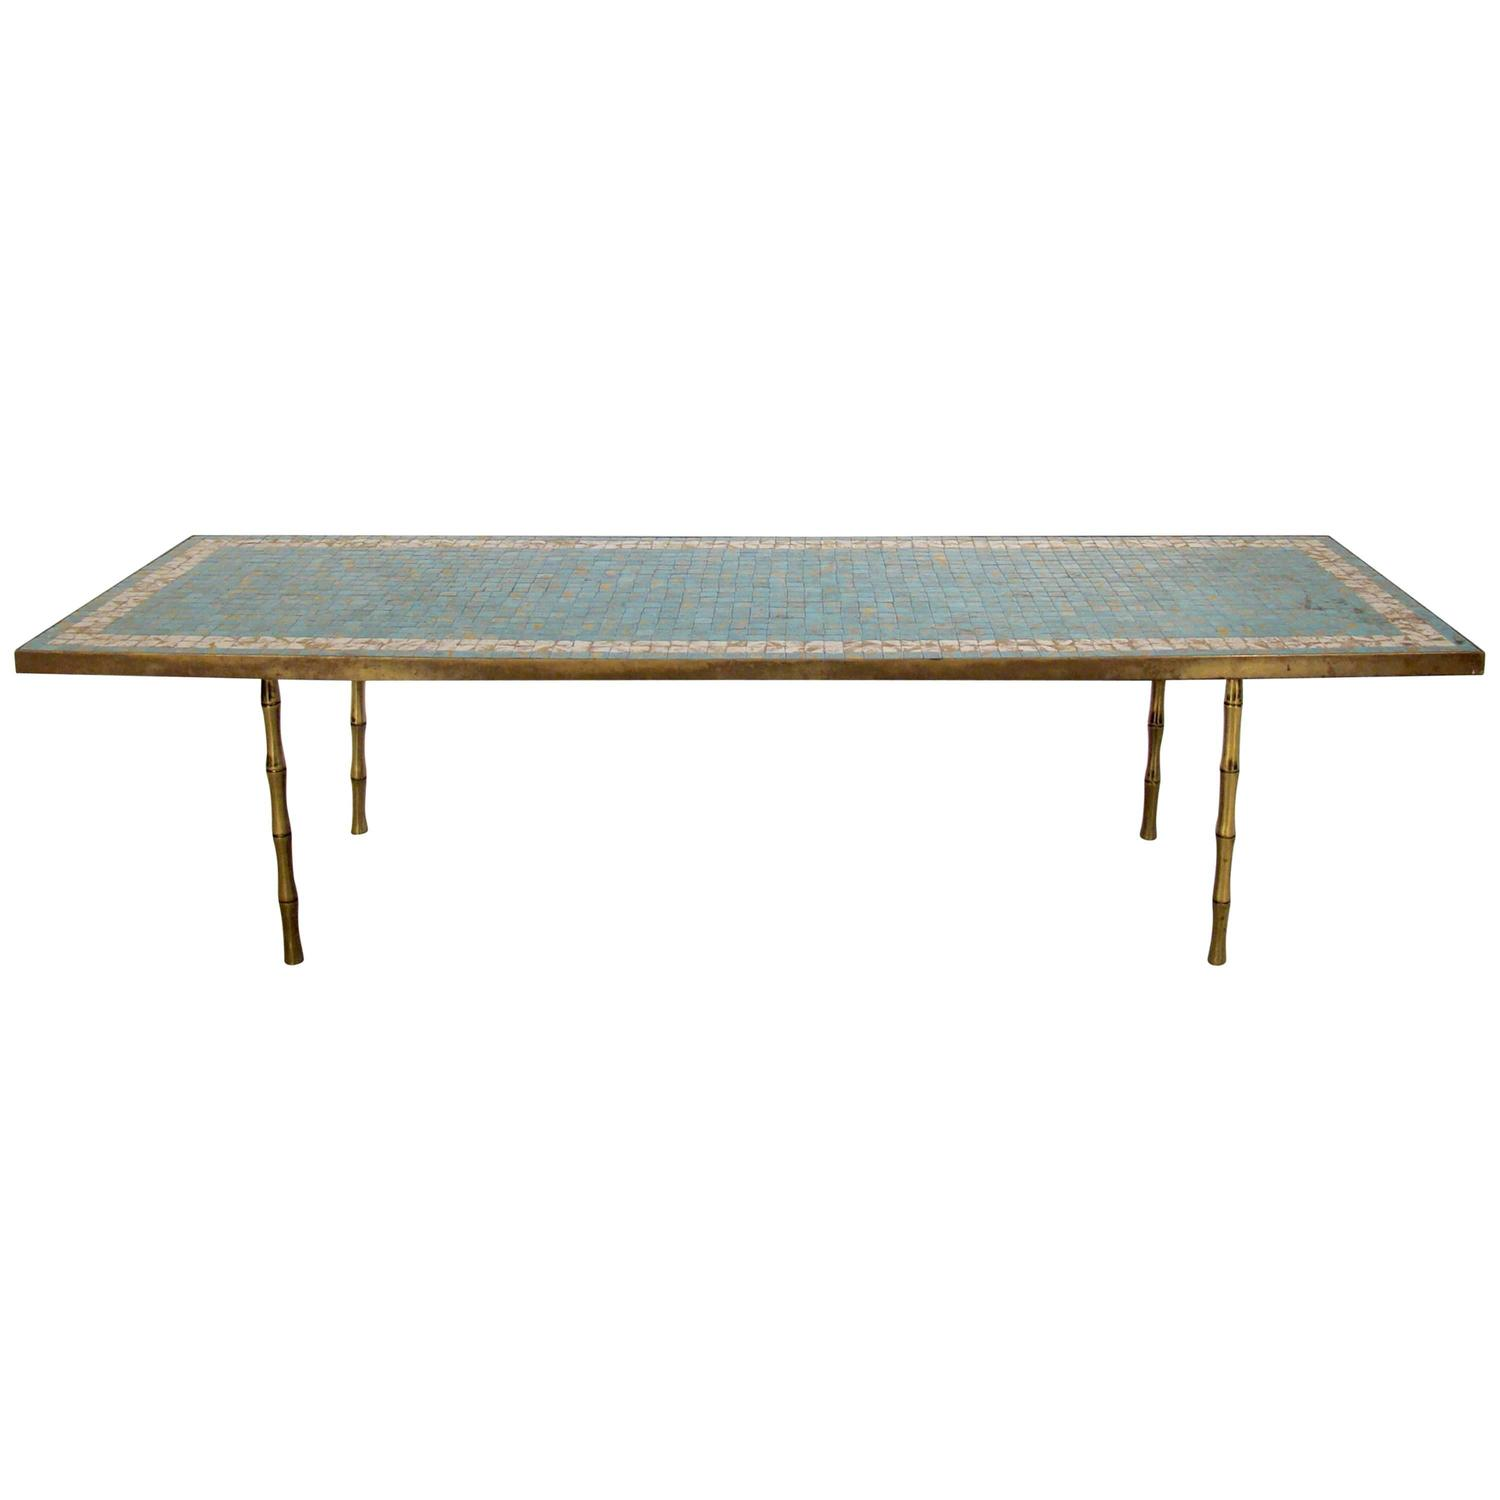 Inlaid Tile and Brass Cocktail or Coffee Table with Brass ...